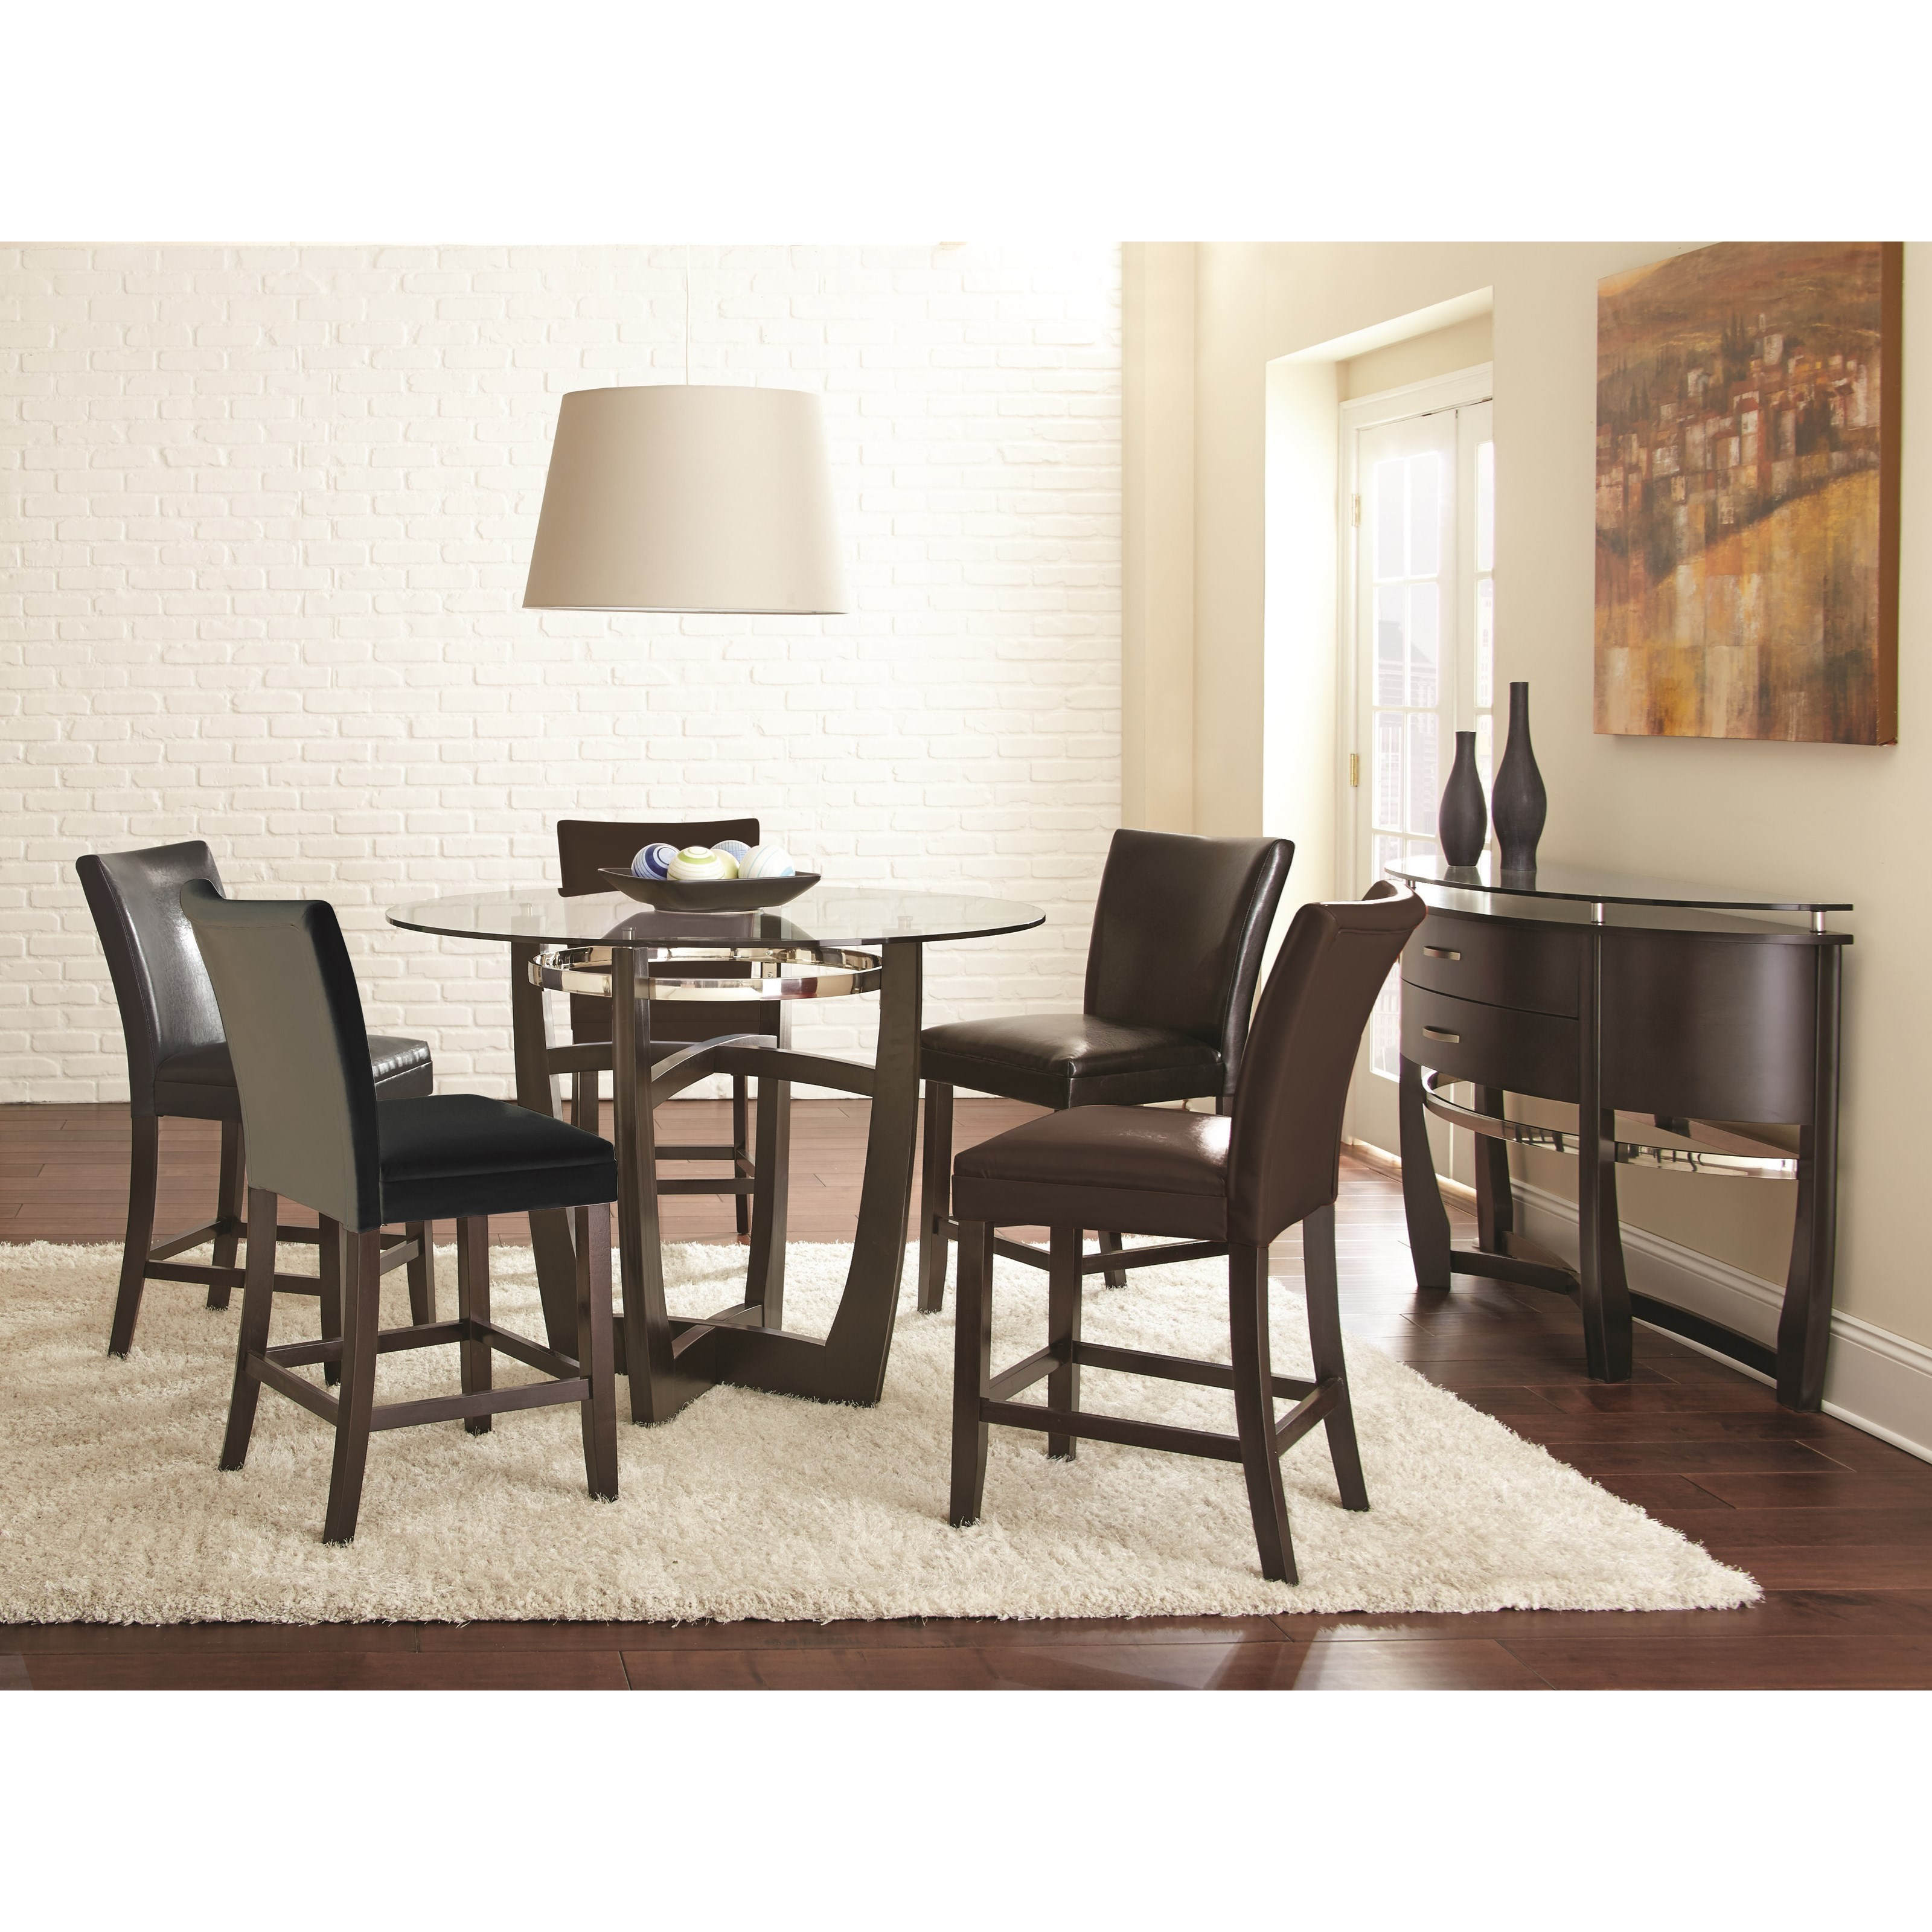 Levits Furniture: Steve Silver Matinee Round Counter Height Table With Glass